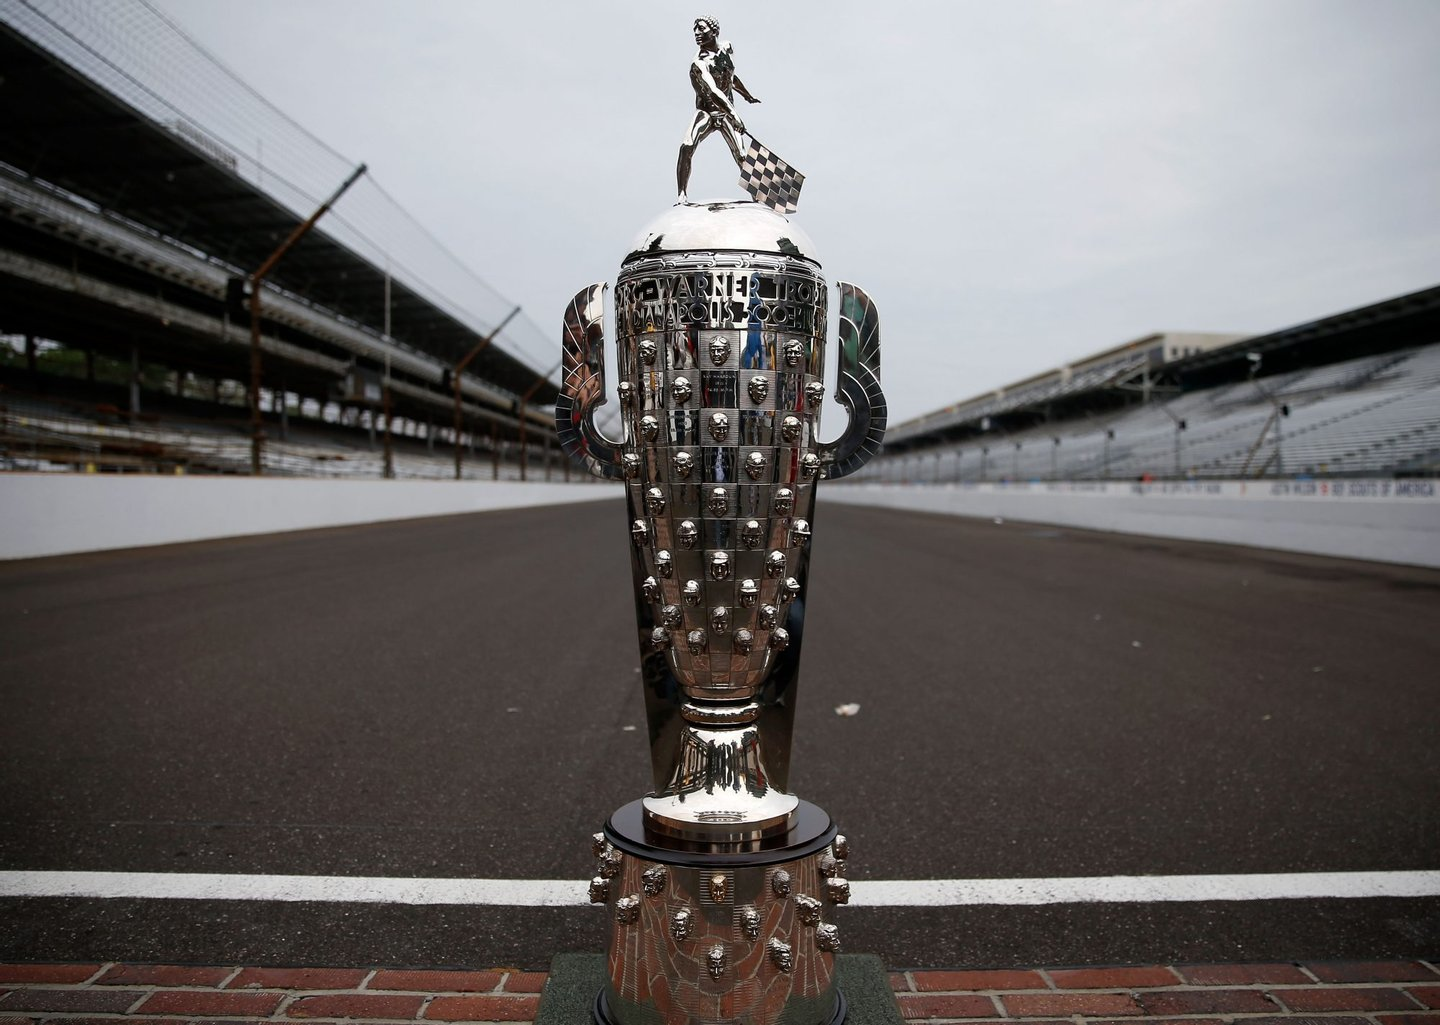 INDIANAPOLIS, IN - MAY 27: A detail of the Borg Warner Trophy on the yard of bricks during the Indianapolis 500 Mile Race Trophy Presentation and Champions Portrait Session for 2013 Indianapolis 500 Champion Tony Kanaan of Brazil, driver of the Hydroxycut KV Racing Technology-SH Racing Chevrolet, at Indianapolis Motor Speedway on May 27, 2013 in Indianapolis, Indiana. Kanaan earned his first Indy 500 victory by winning the 97th running of the race. (Photo by Chris Graythen/Getty Images)